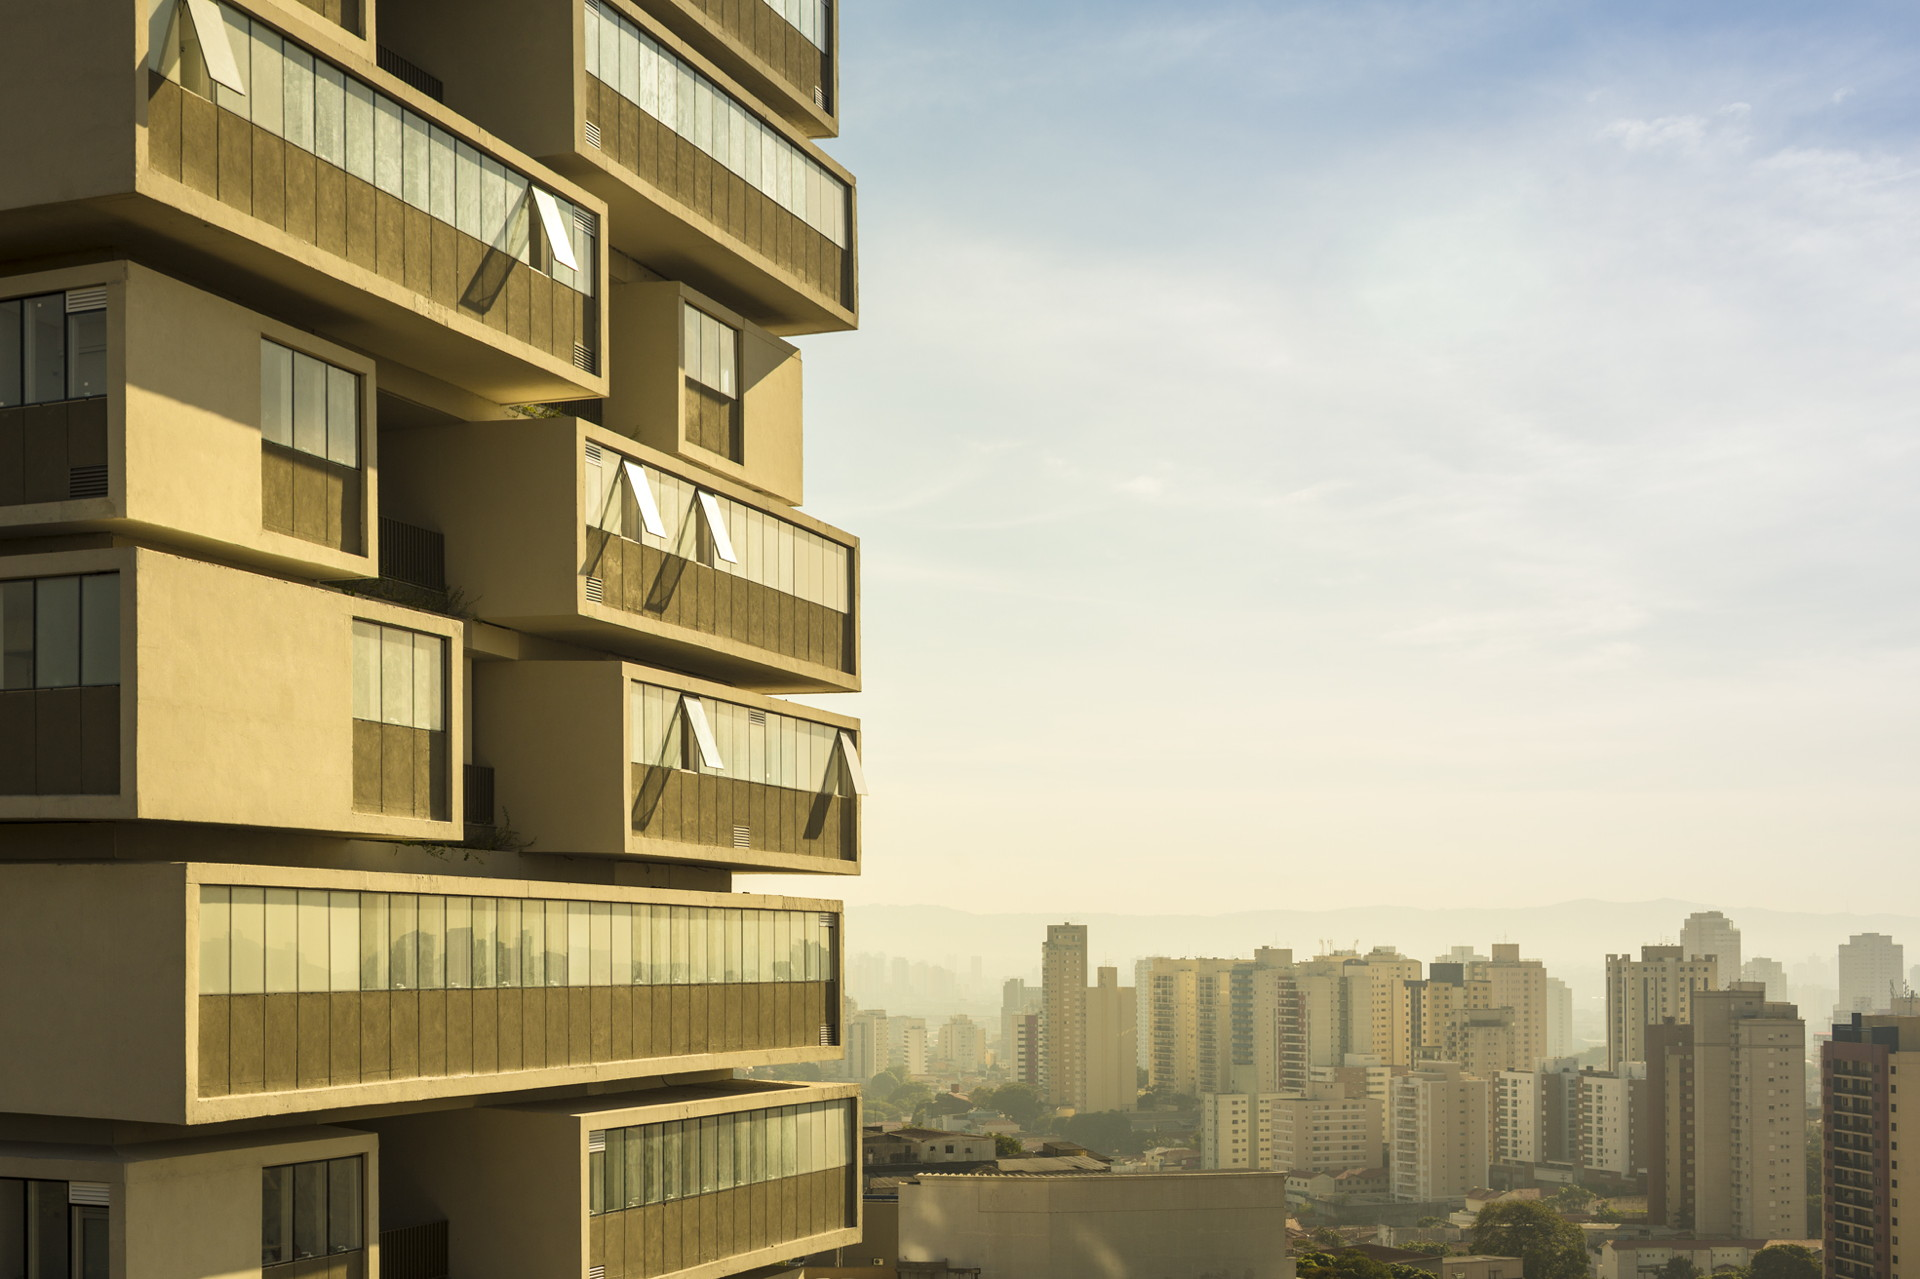 360 deg building residential tower s atilde o paulo 2013 photo